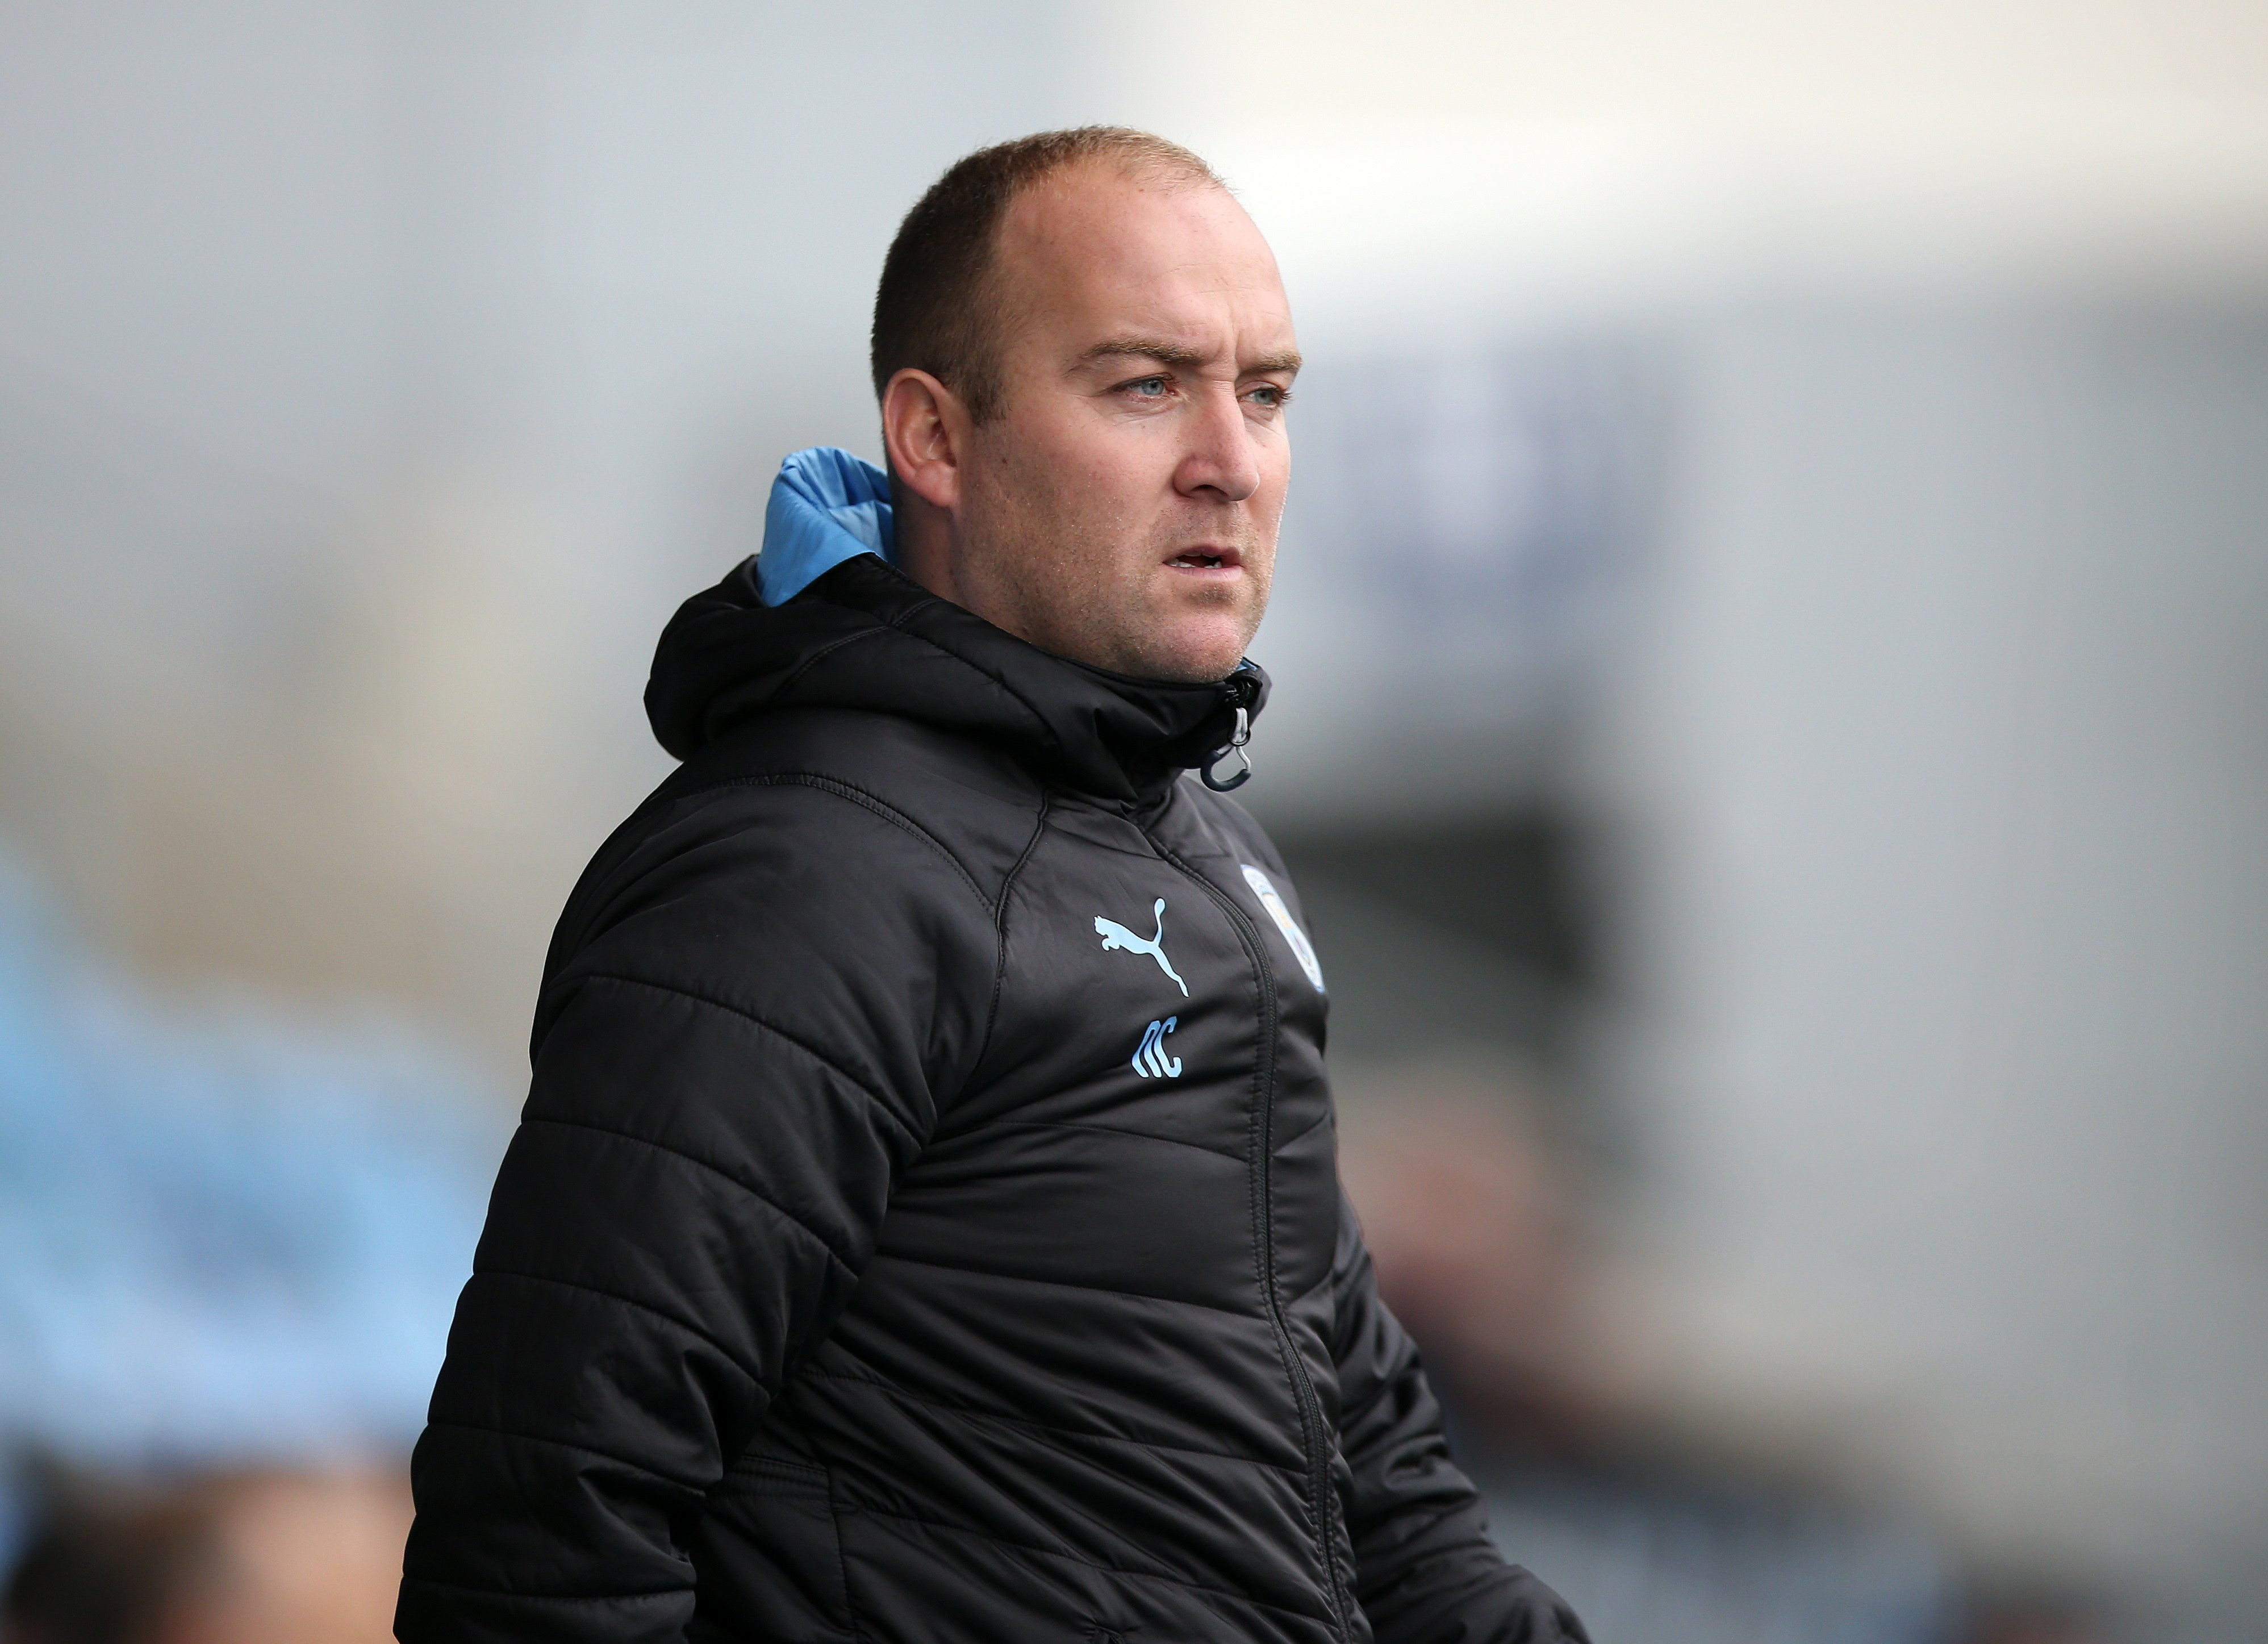 Departing Manchester City boss Nick Cushing is 'surprised' by lack of support and integration by Premier League clubs for their women's sides